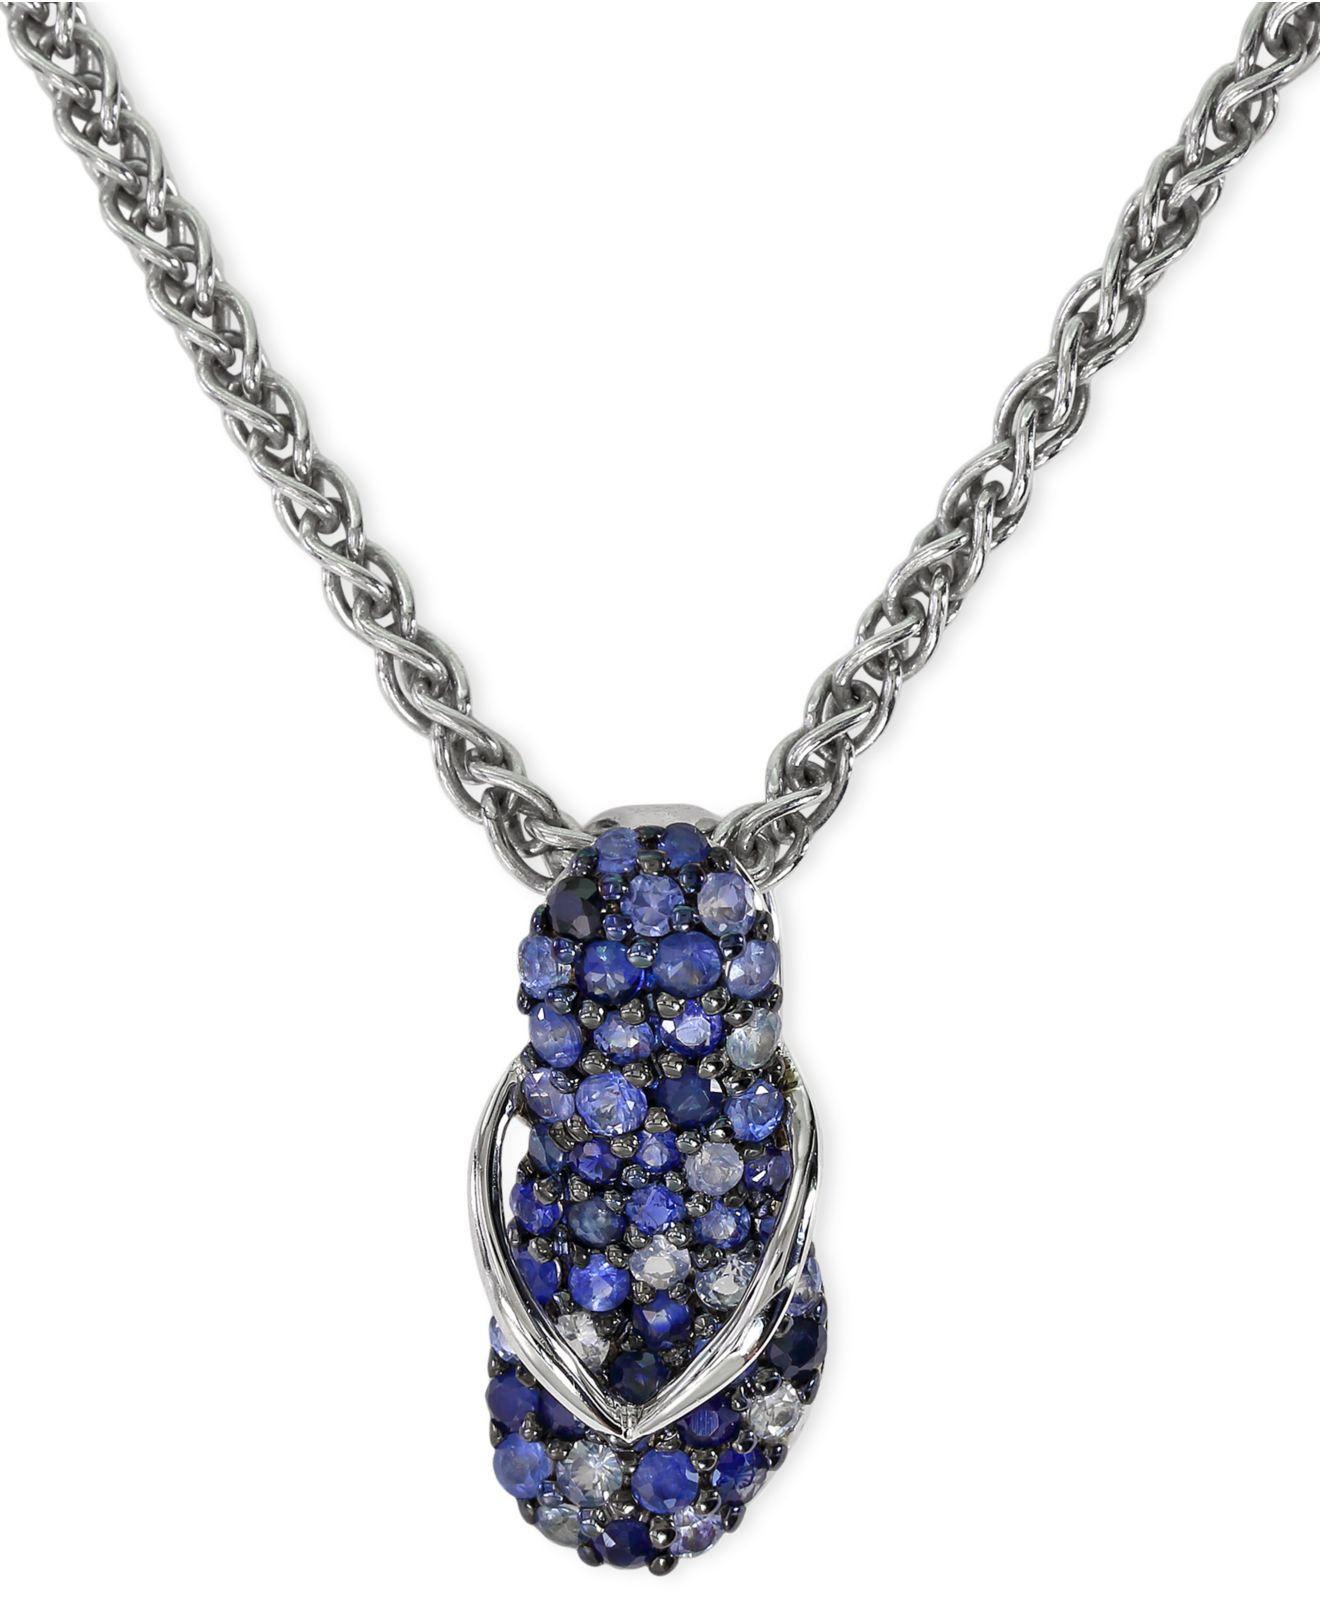 silver orders overstock pendant preciosa la sterling product created opal flip jewelry necklace blue over flop on watches shipping free